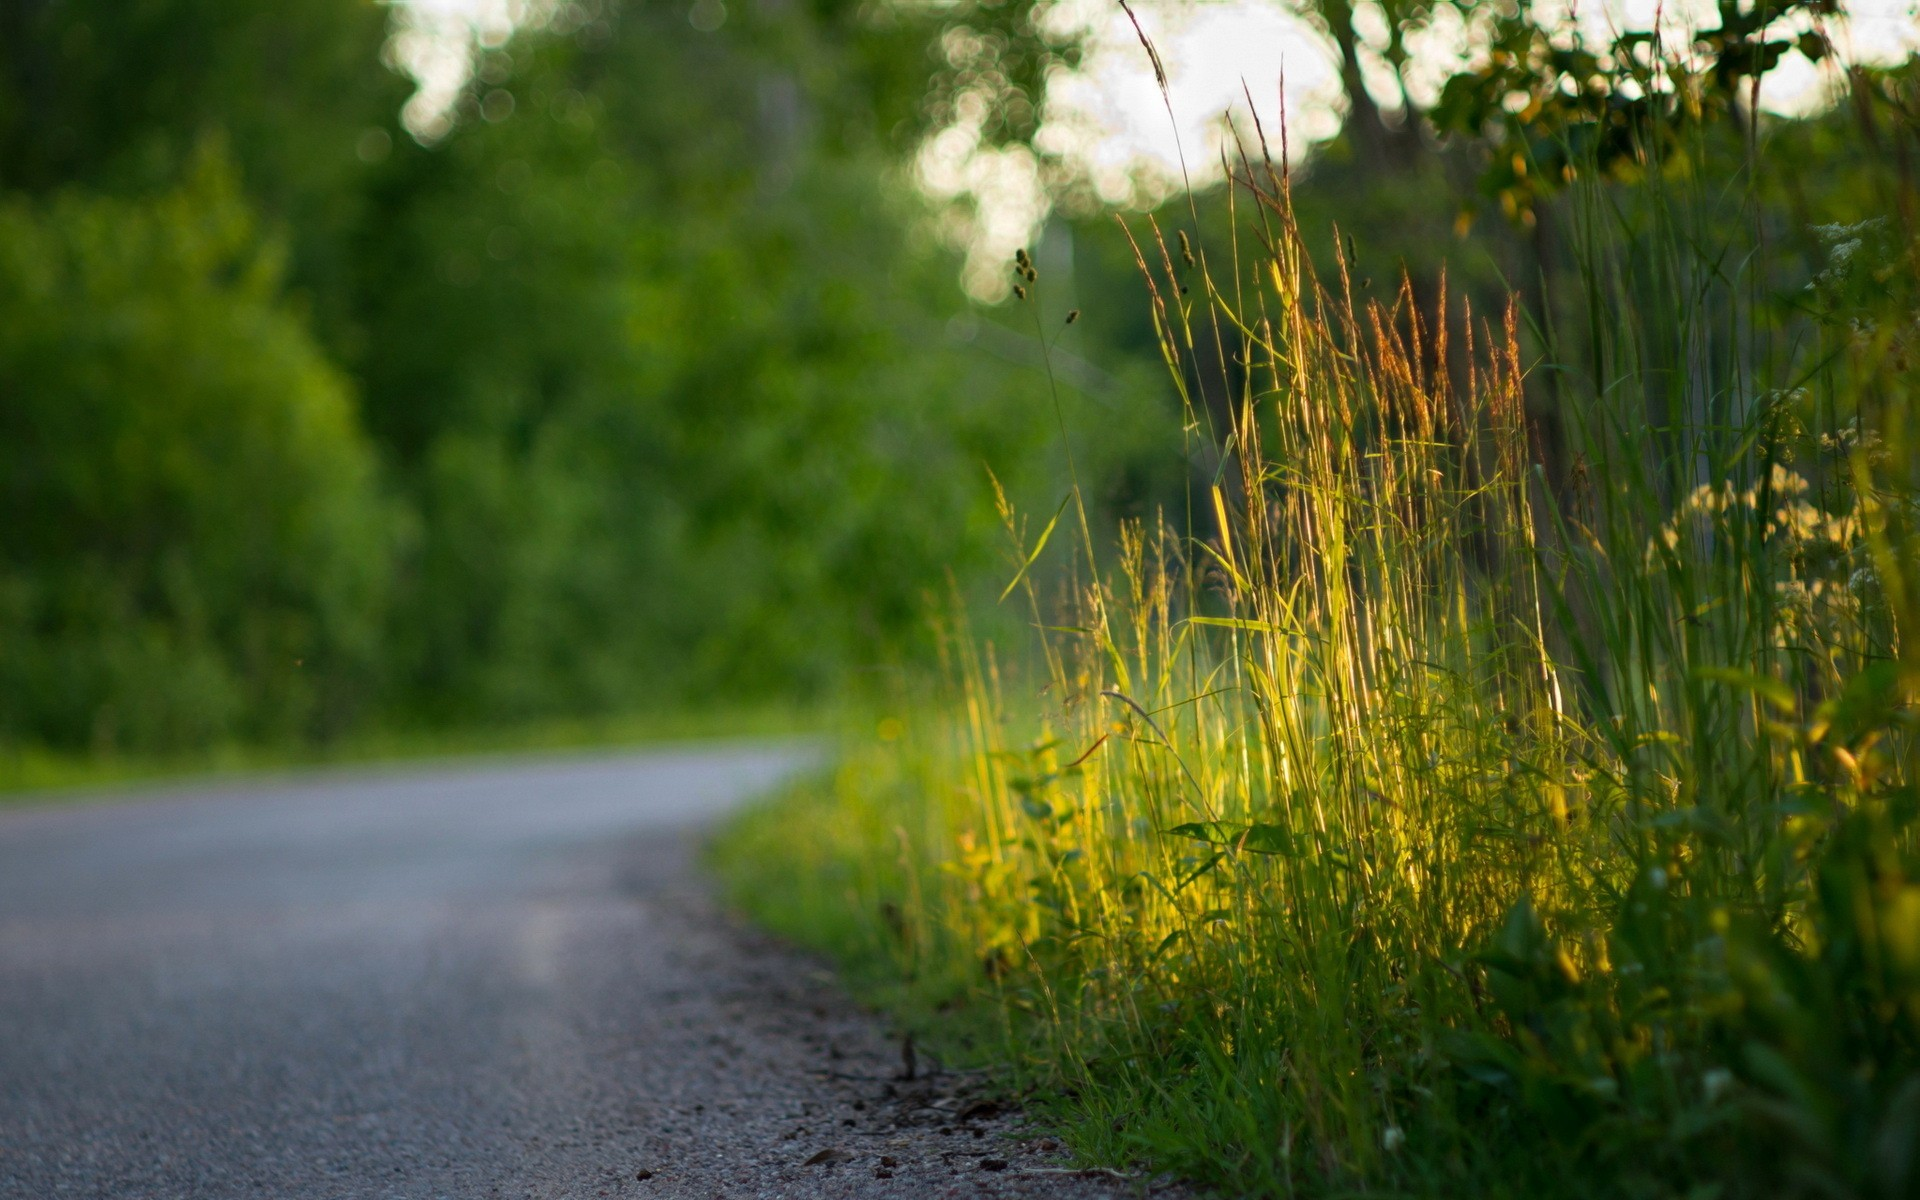 Nature Grass Roads Wallpaper